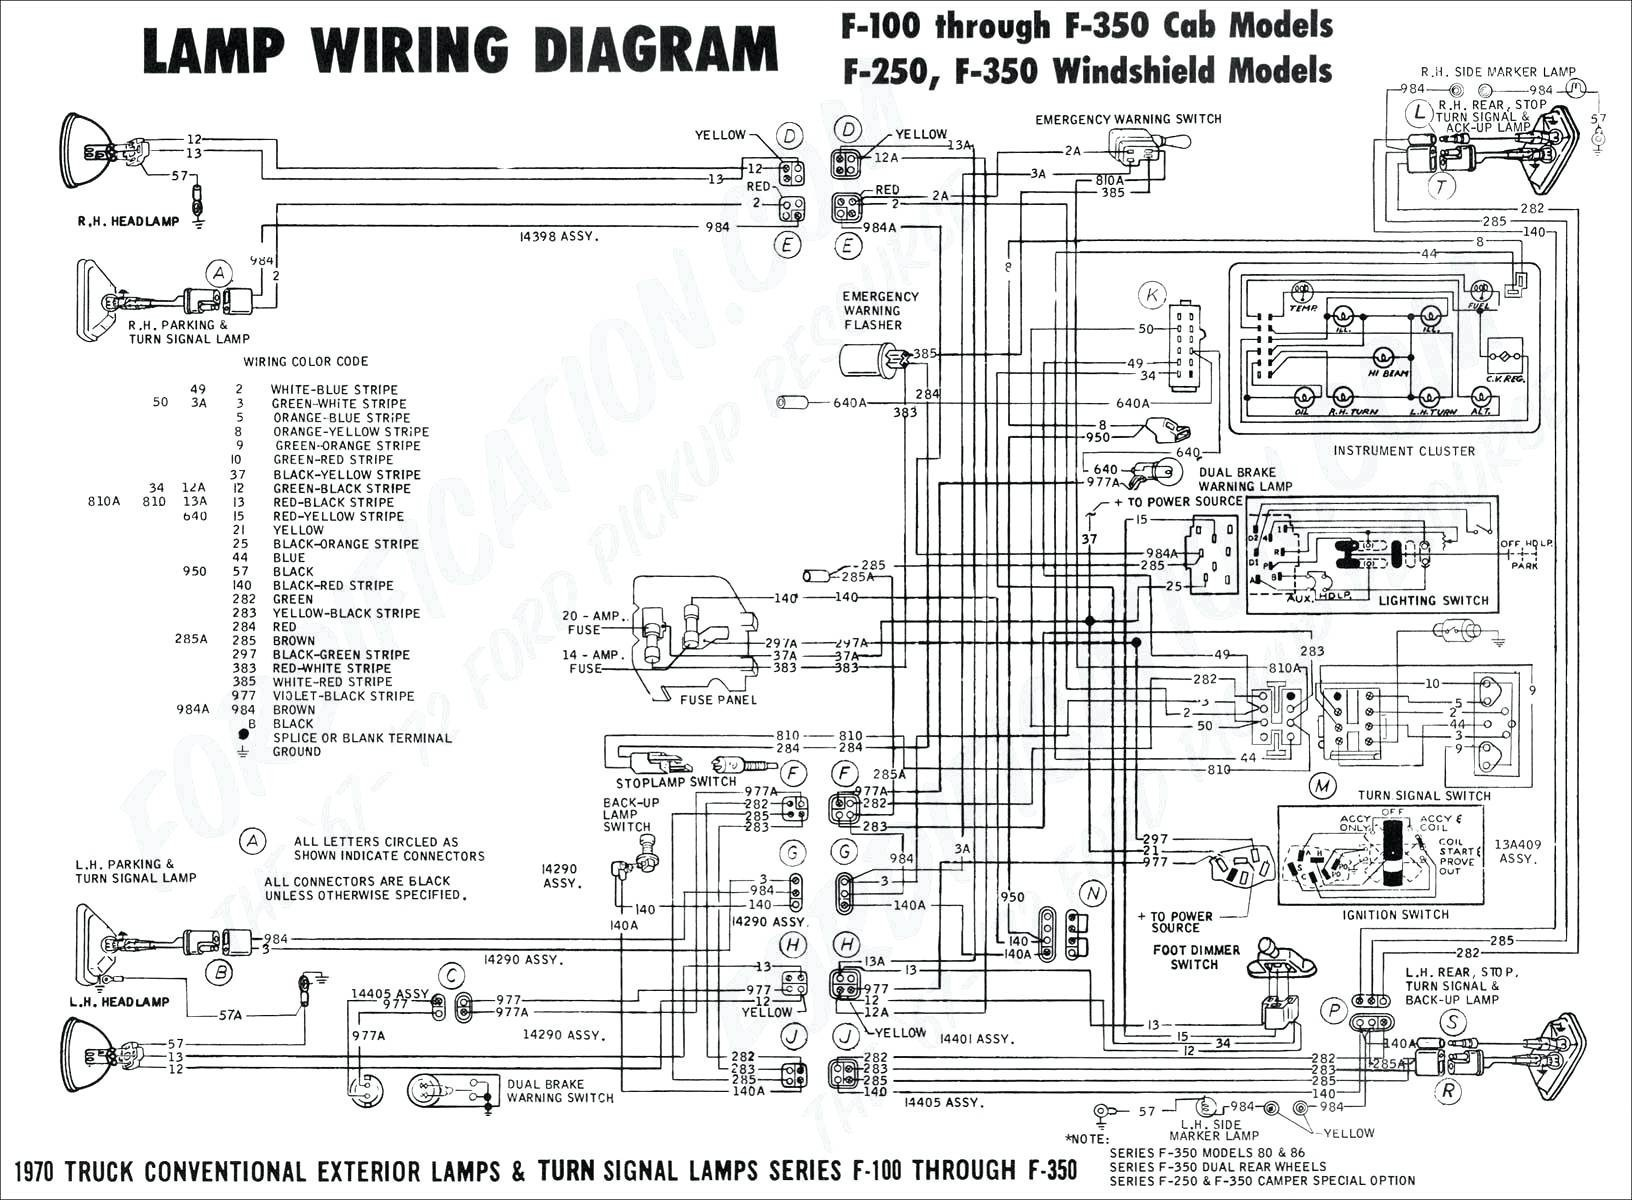 Fabulous Dohc Cb750 Wire Diagram Electronic Schematics Collections Wiring Digital Resources Sapredefiancerspsorg